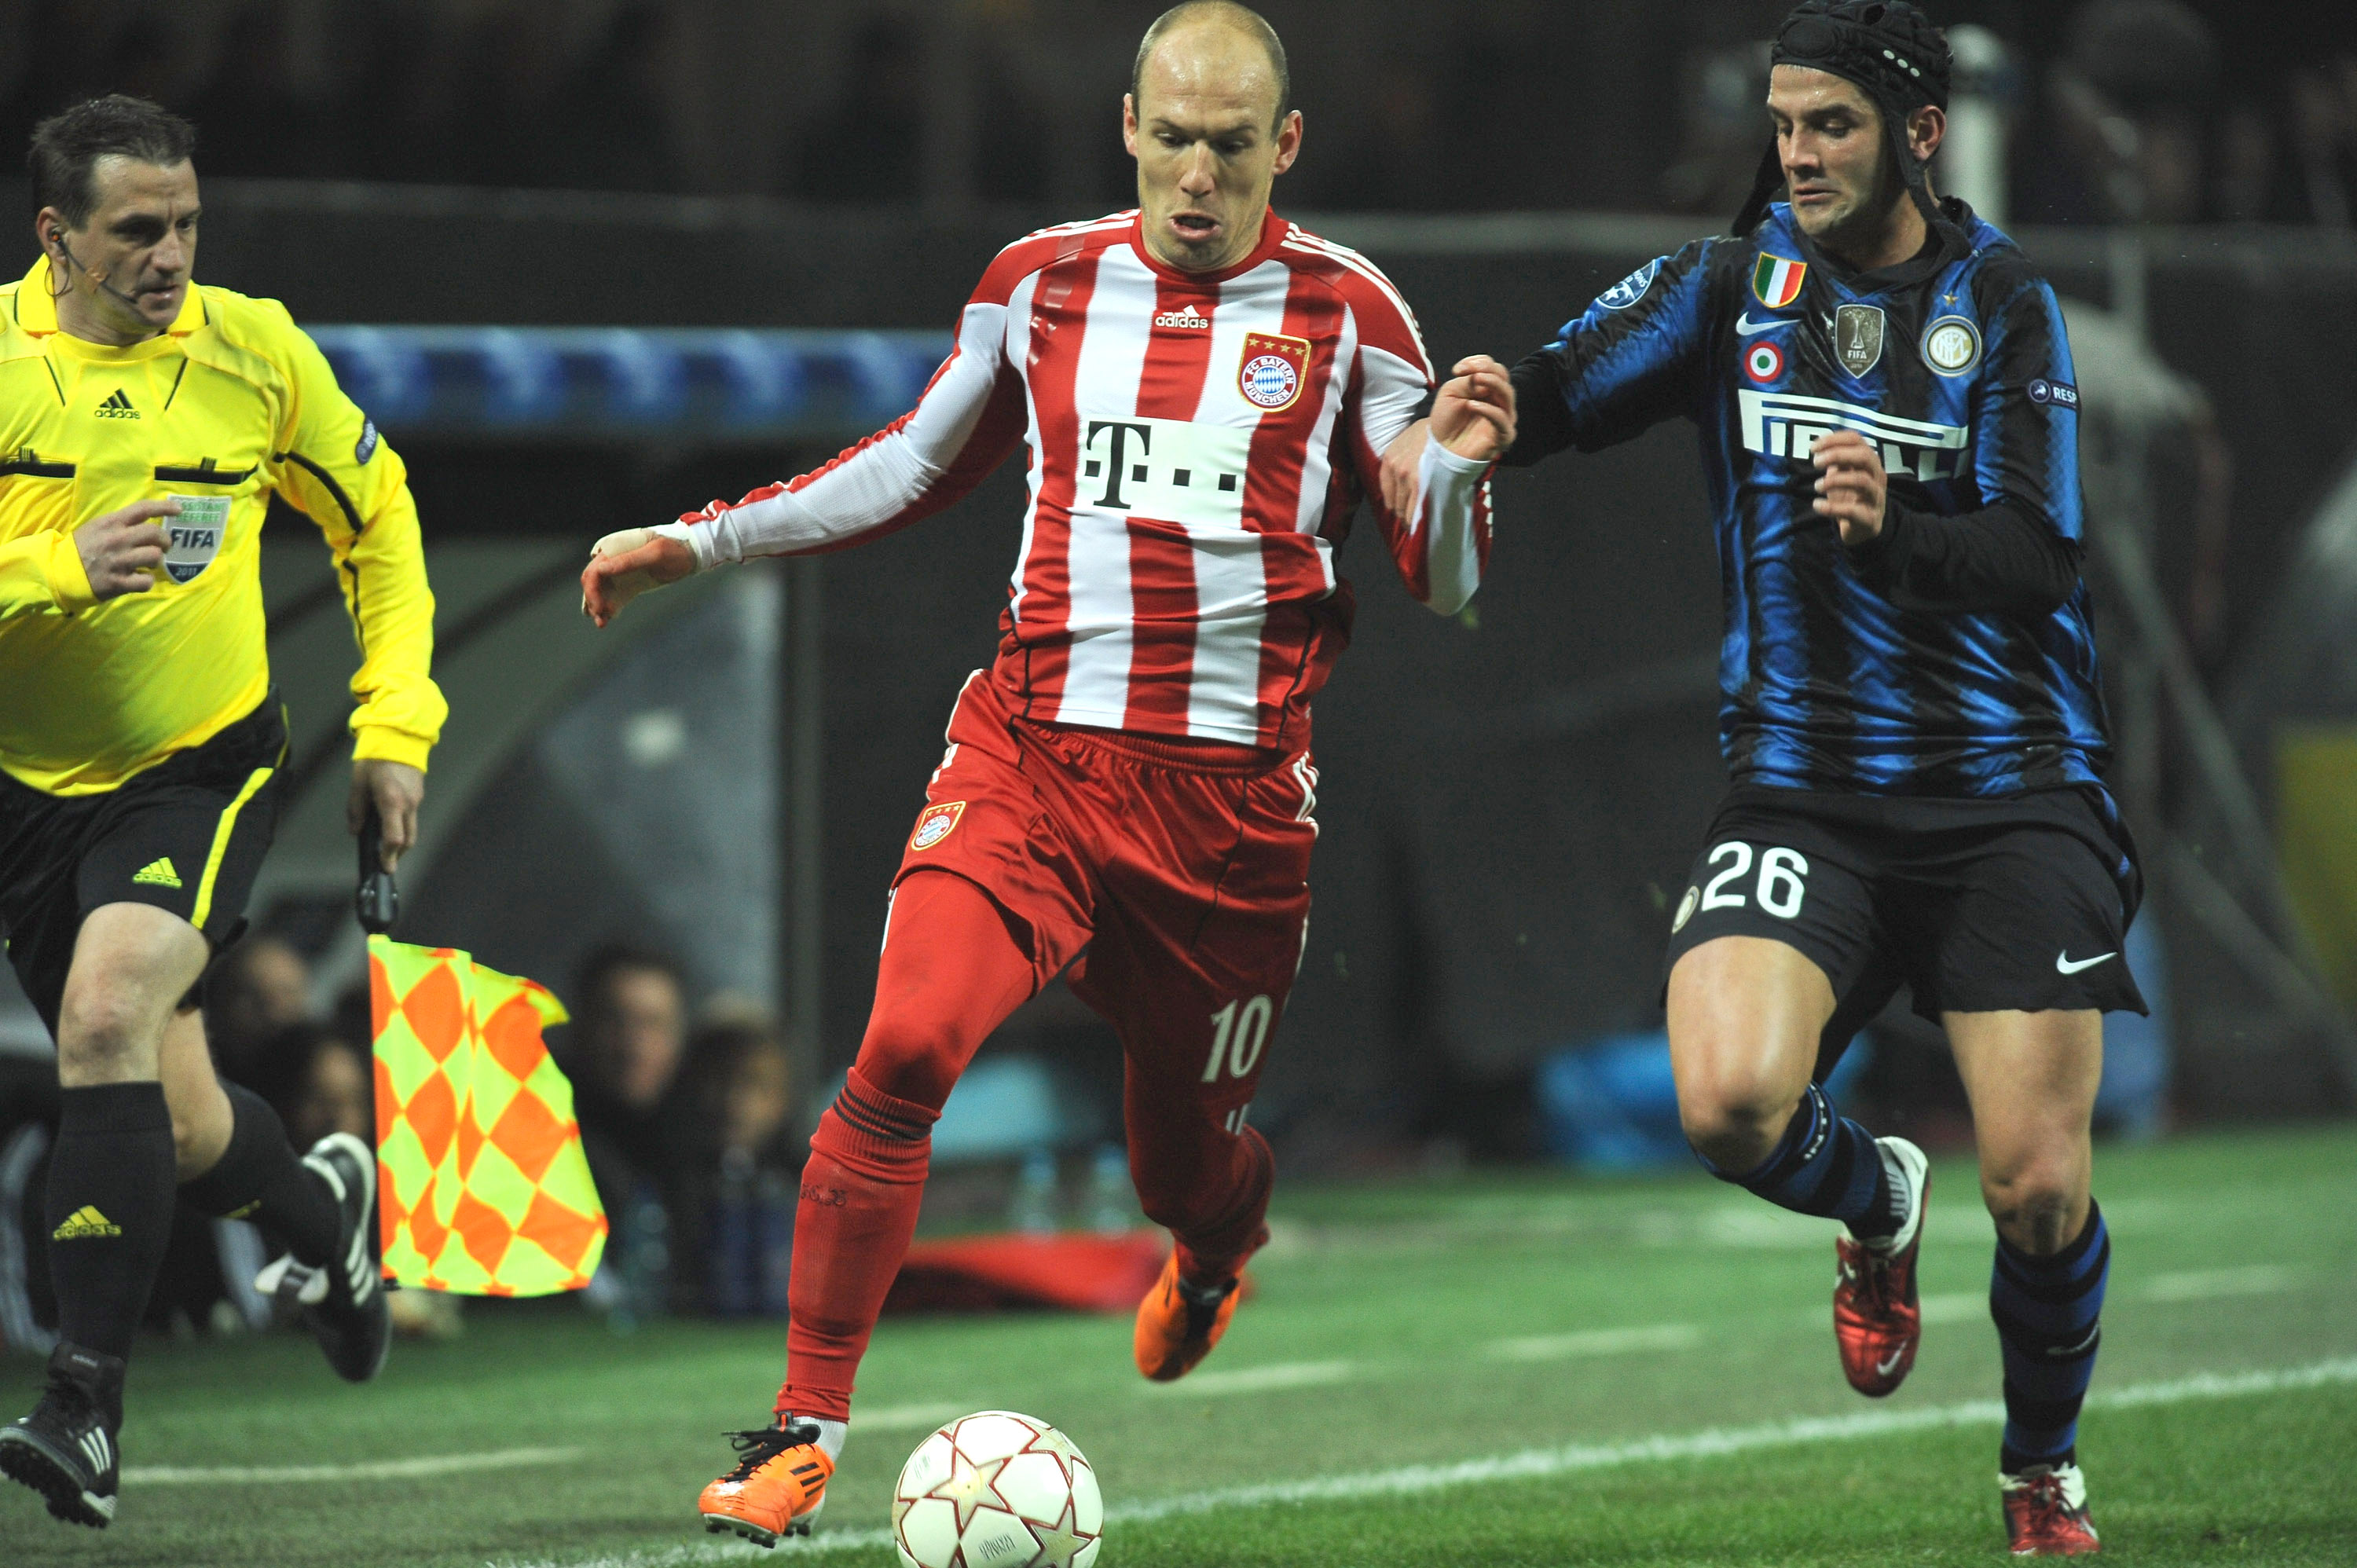 MILAN, ITALY - FEBRUARY 23:  Cristian Chivu of Inter Milan competes with Arjen Robben of FC Bayern Muenchen during the UEFA Champions League round of 16 first leg match between Inter Milan v FC Bayern Muenchen on February 23, 2011 in Milan, Italy.  (Photo